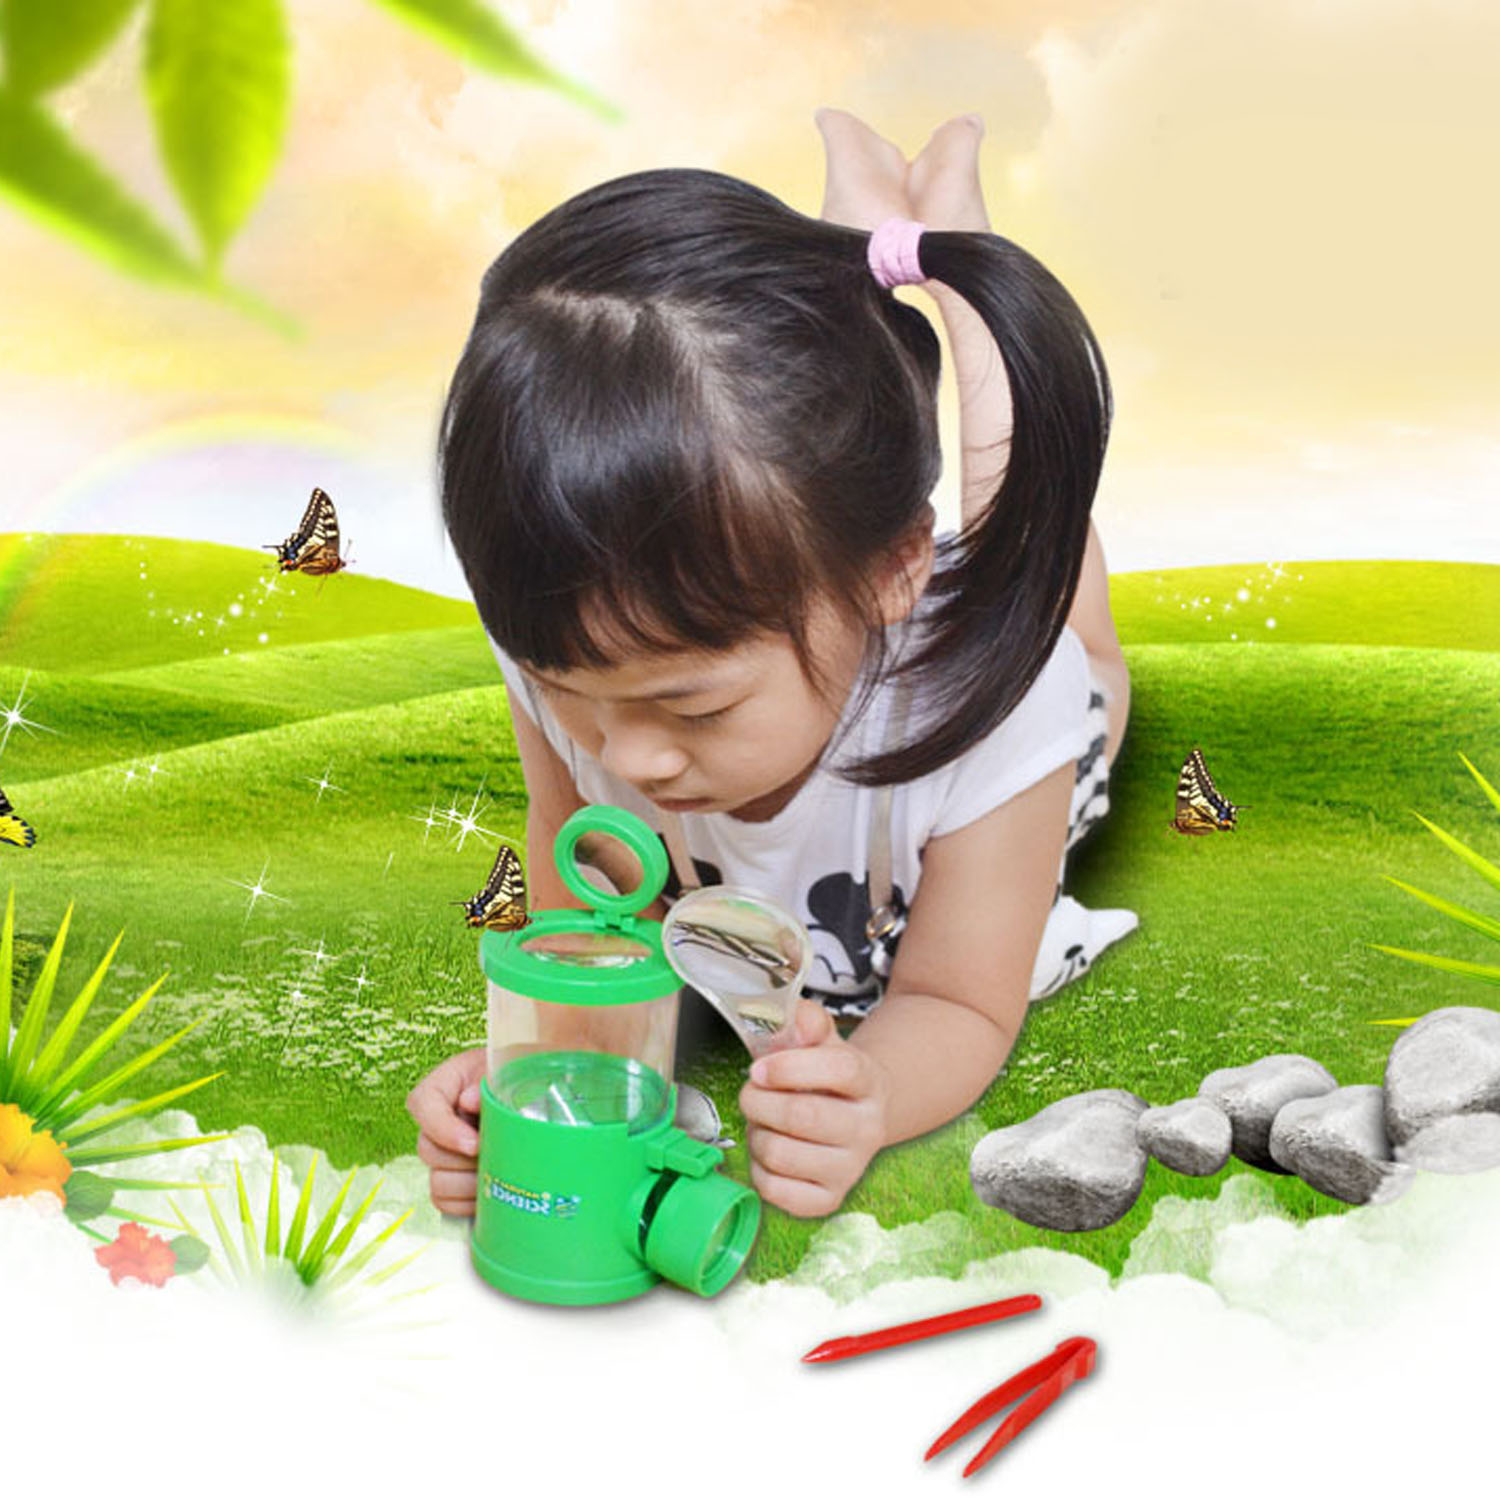 Kids Insect Bug Magnify Viewer Catcher Magnifier Microscope Science Toy Kit Including Viewer Magnifier Tweezers Stick